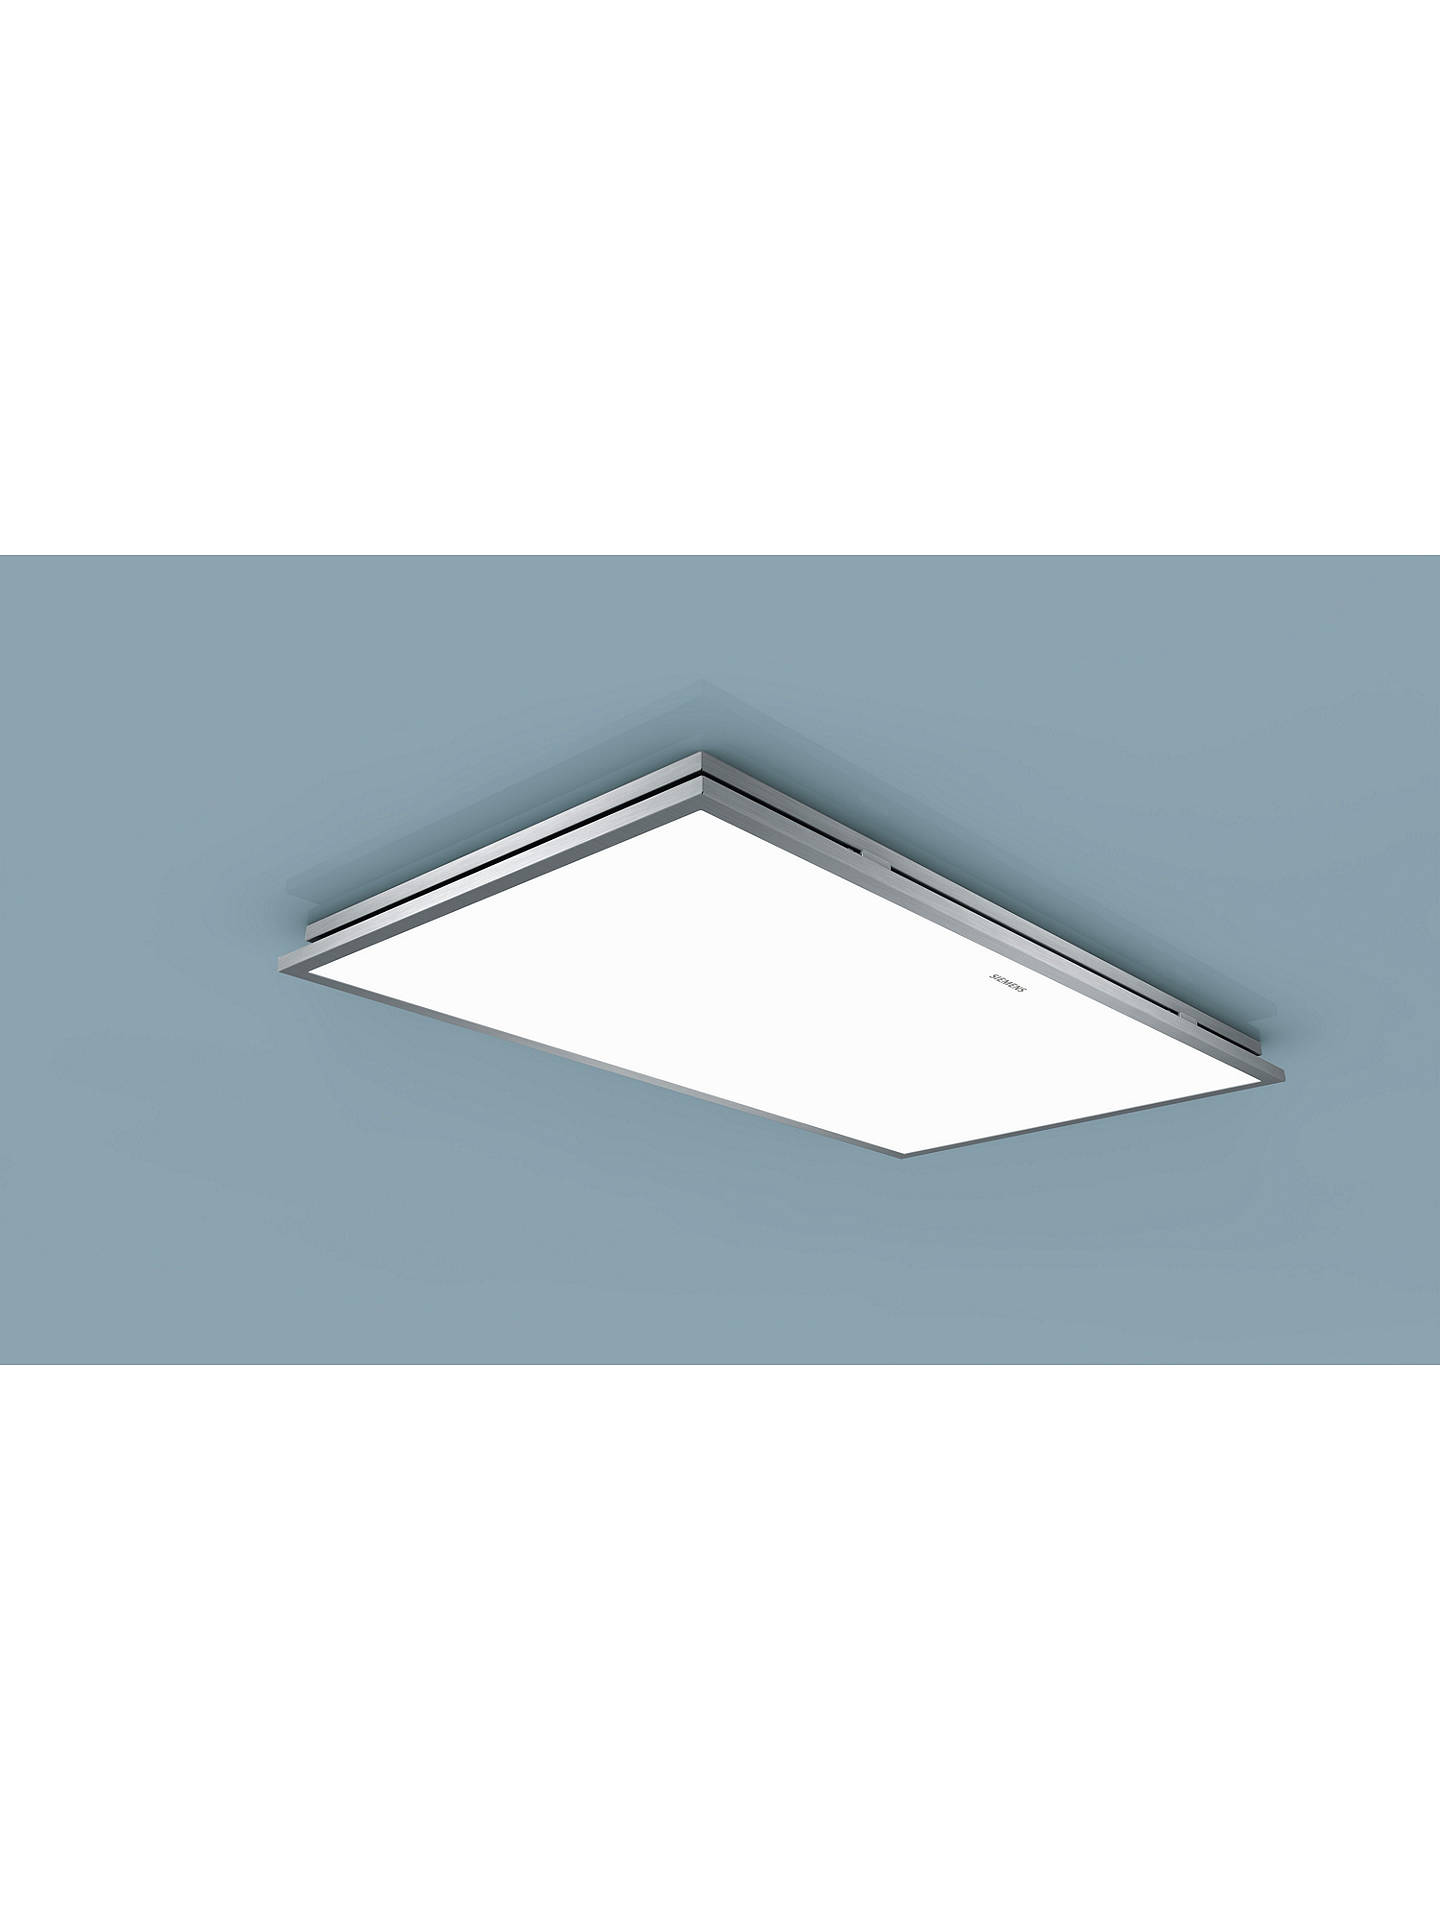 BuySiemens iQ700 LF959RE55B Ceiling Cooker Hood, Stainless Steel Online at johnlewis.com